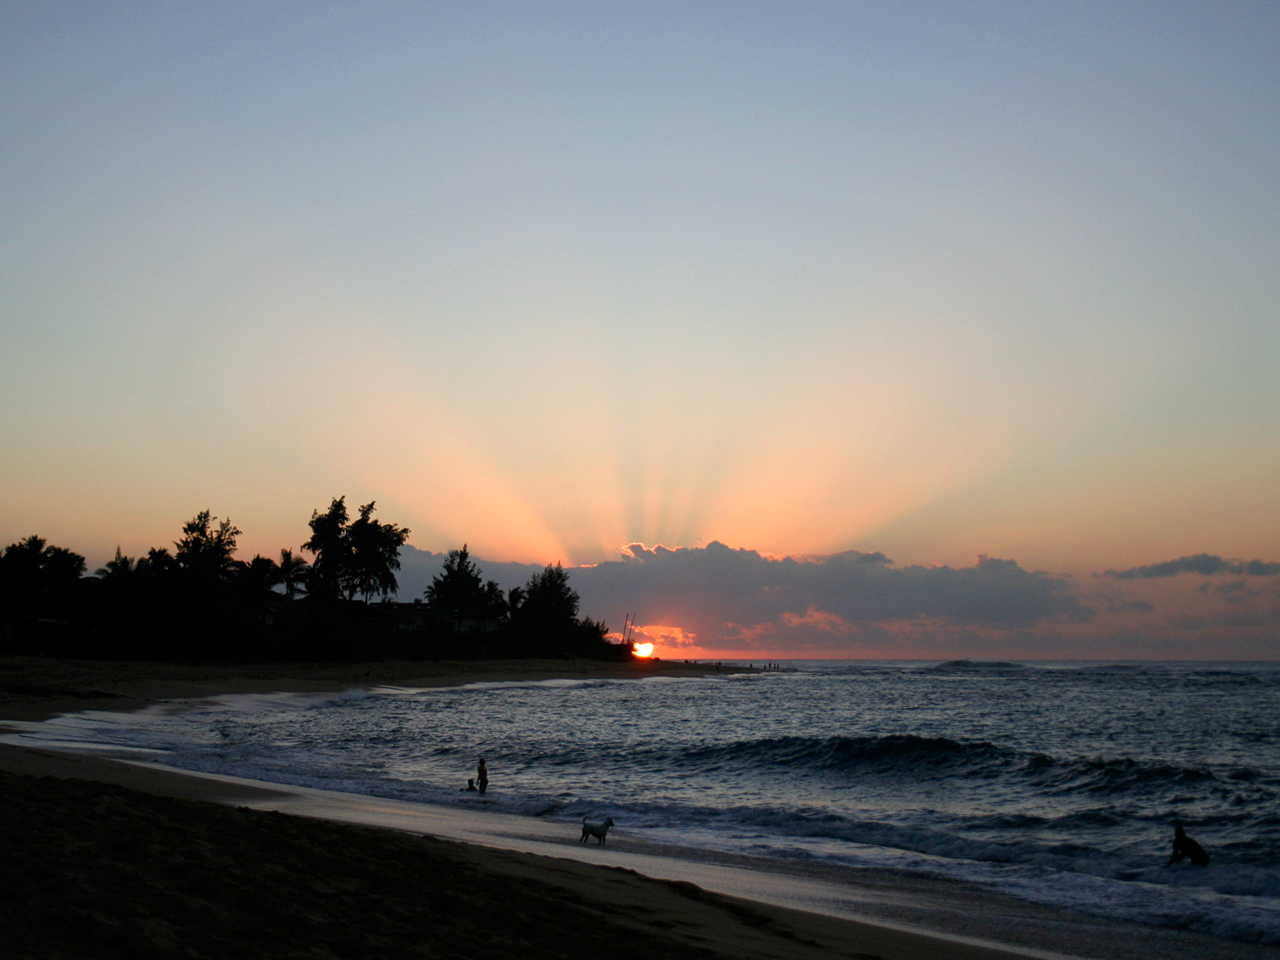 And what better way to end the day than by watching the sunset at Sunset Beach.